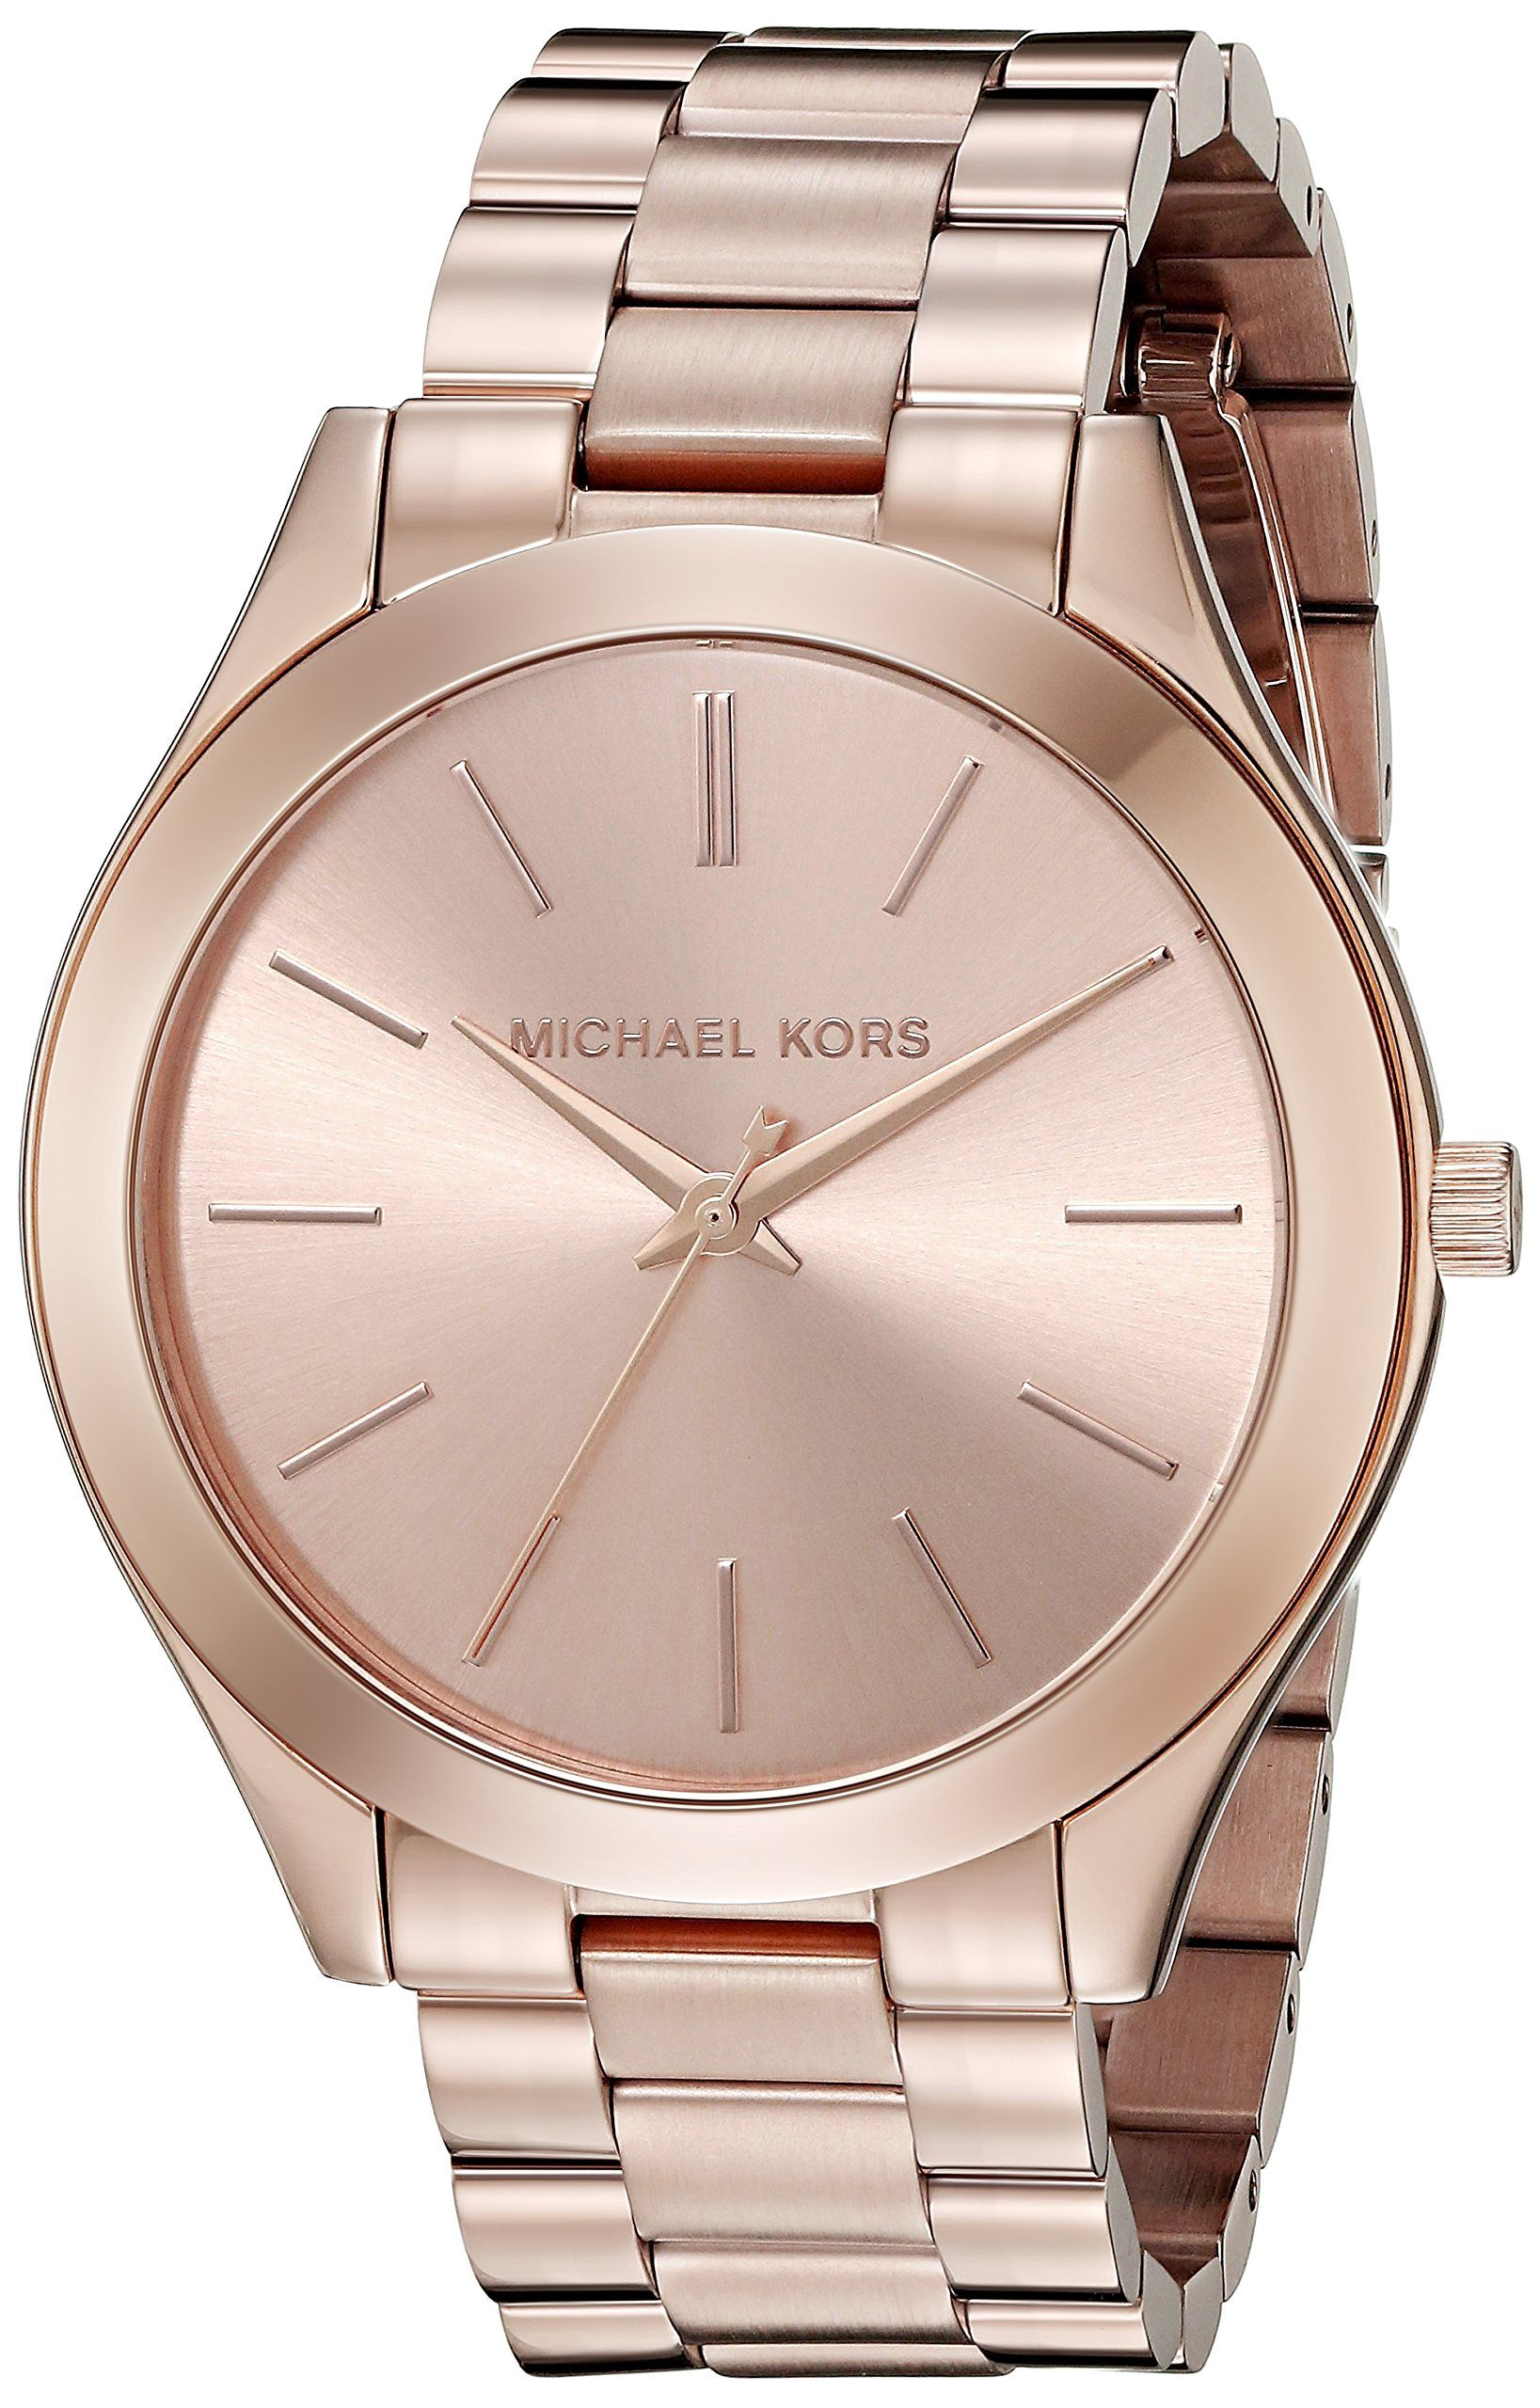 d43b4727b6d25 Michael Kors Women s MK3197 Runway Analog Display Analog Quartz Rose Gold  Watch. Relógio Michael KorsRelógios ...